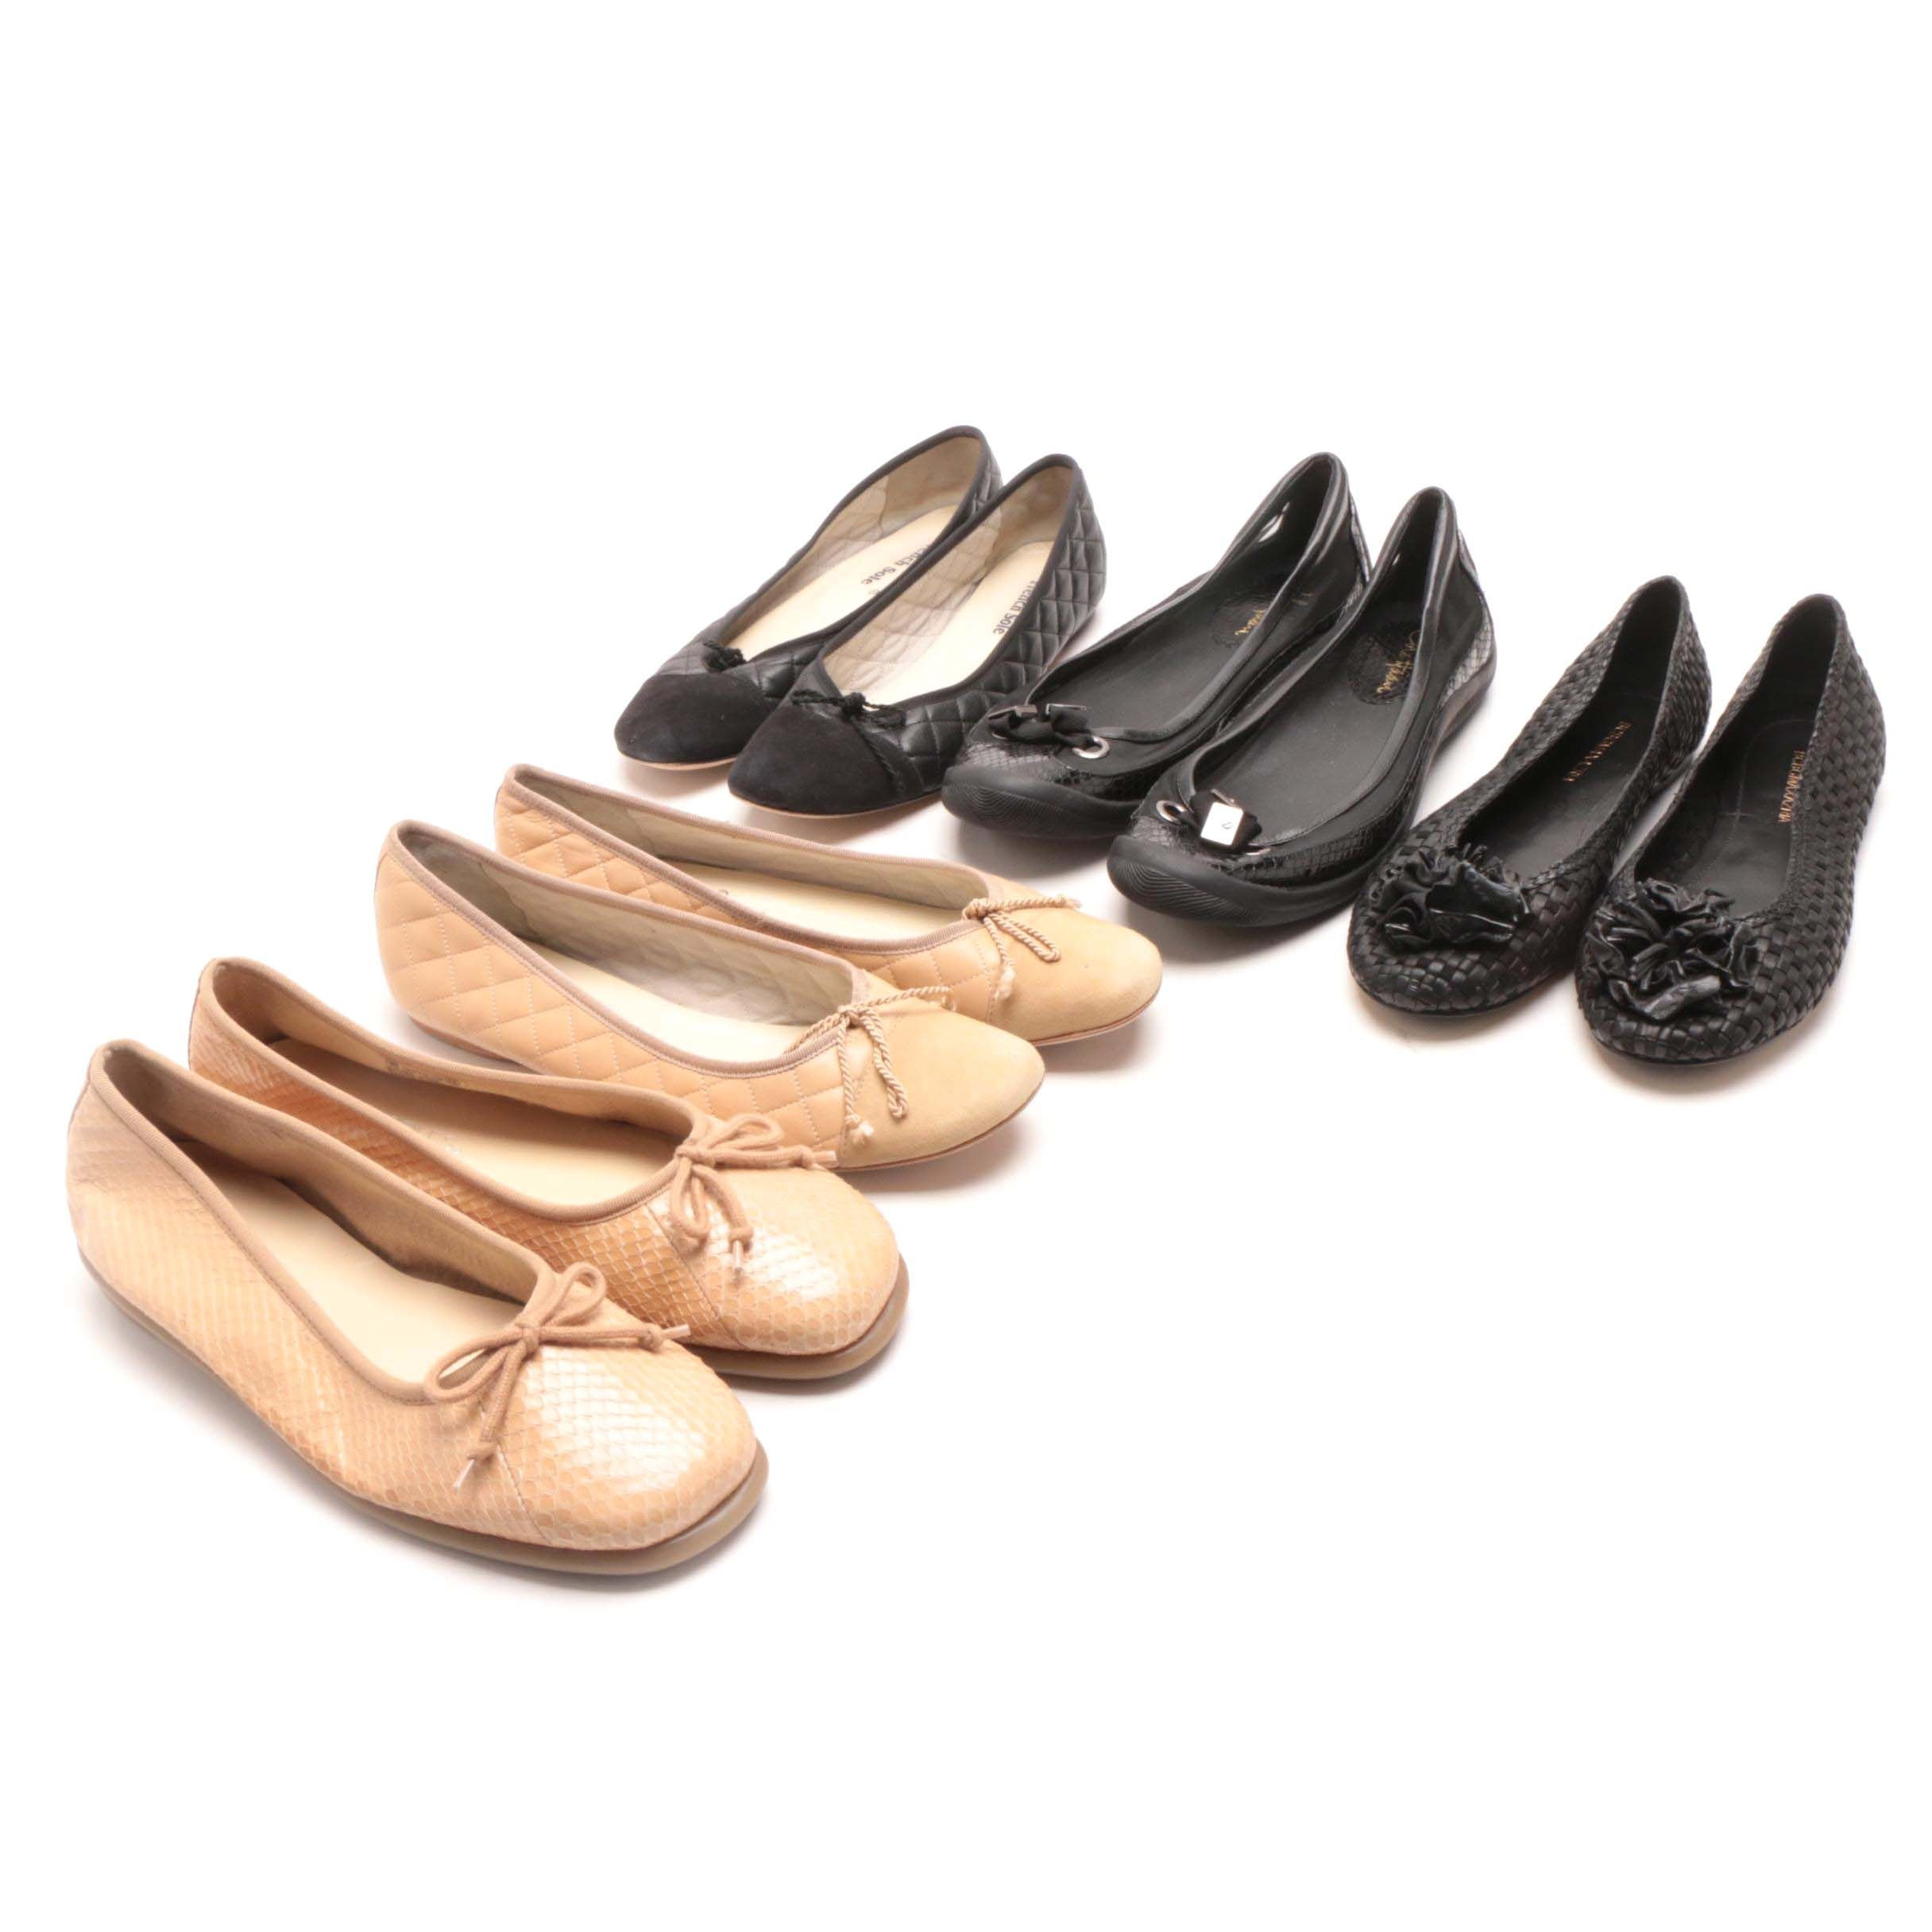 BCBG, Aerosoles, French Sole and Cole Haan Flat Shoes